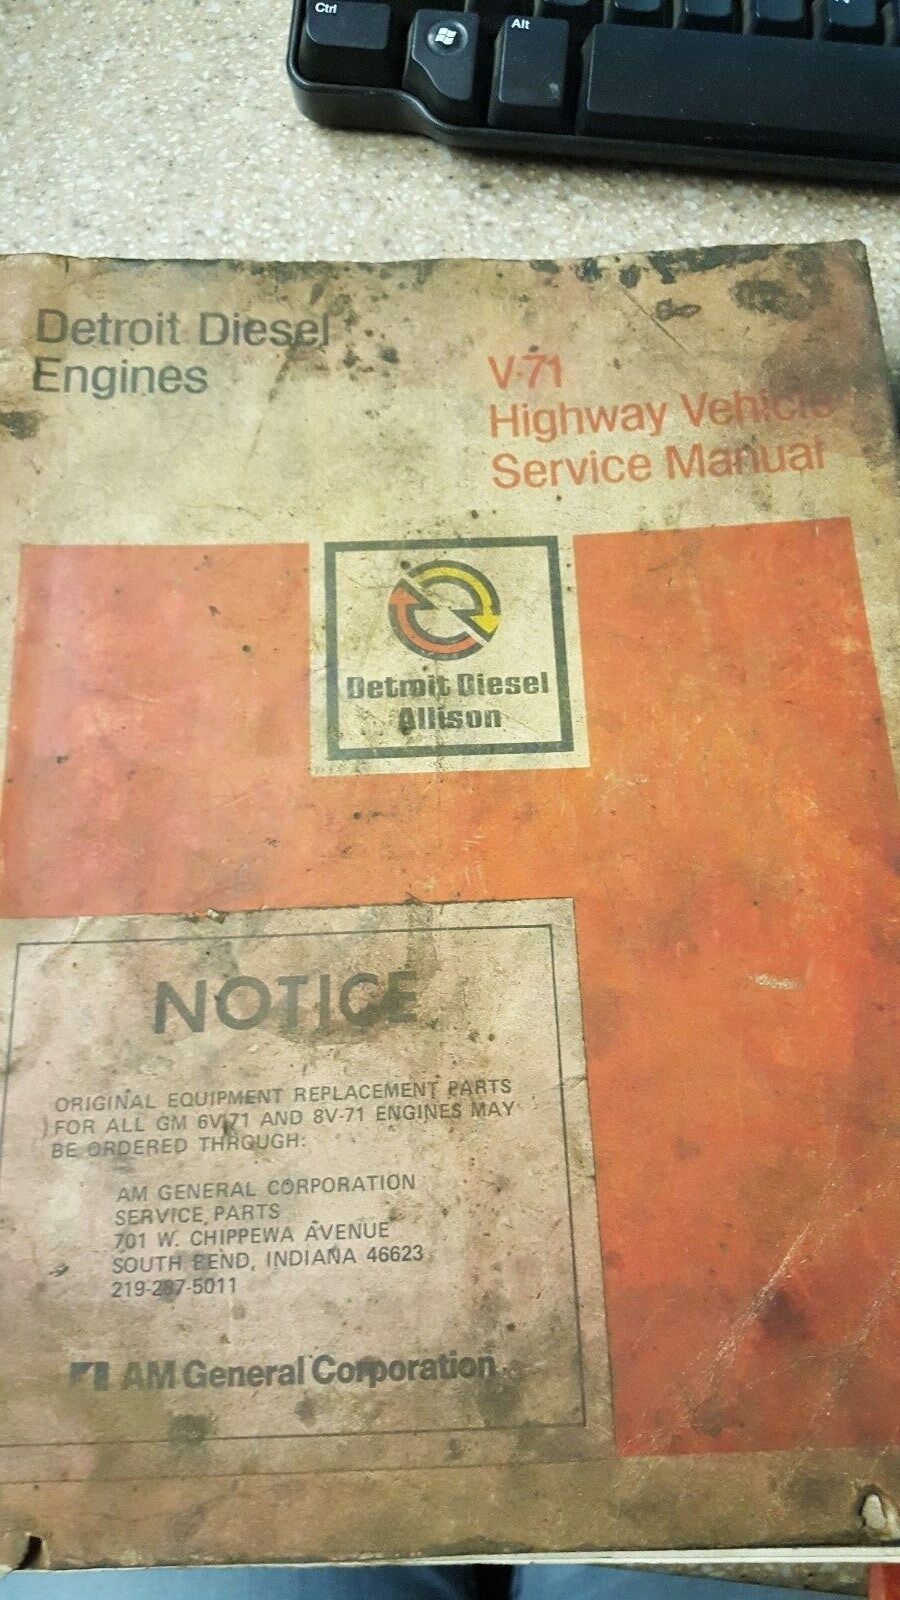 Detroit Diesel V-71 Highway Vehicle Service Manual 1 of 2Only 1 available  ...